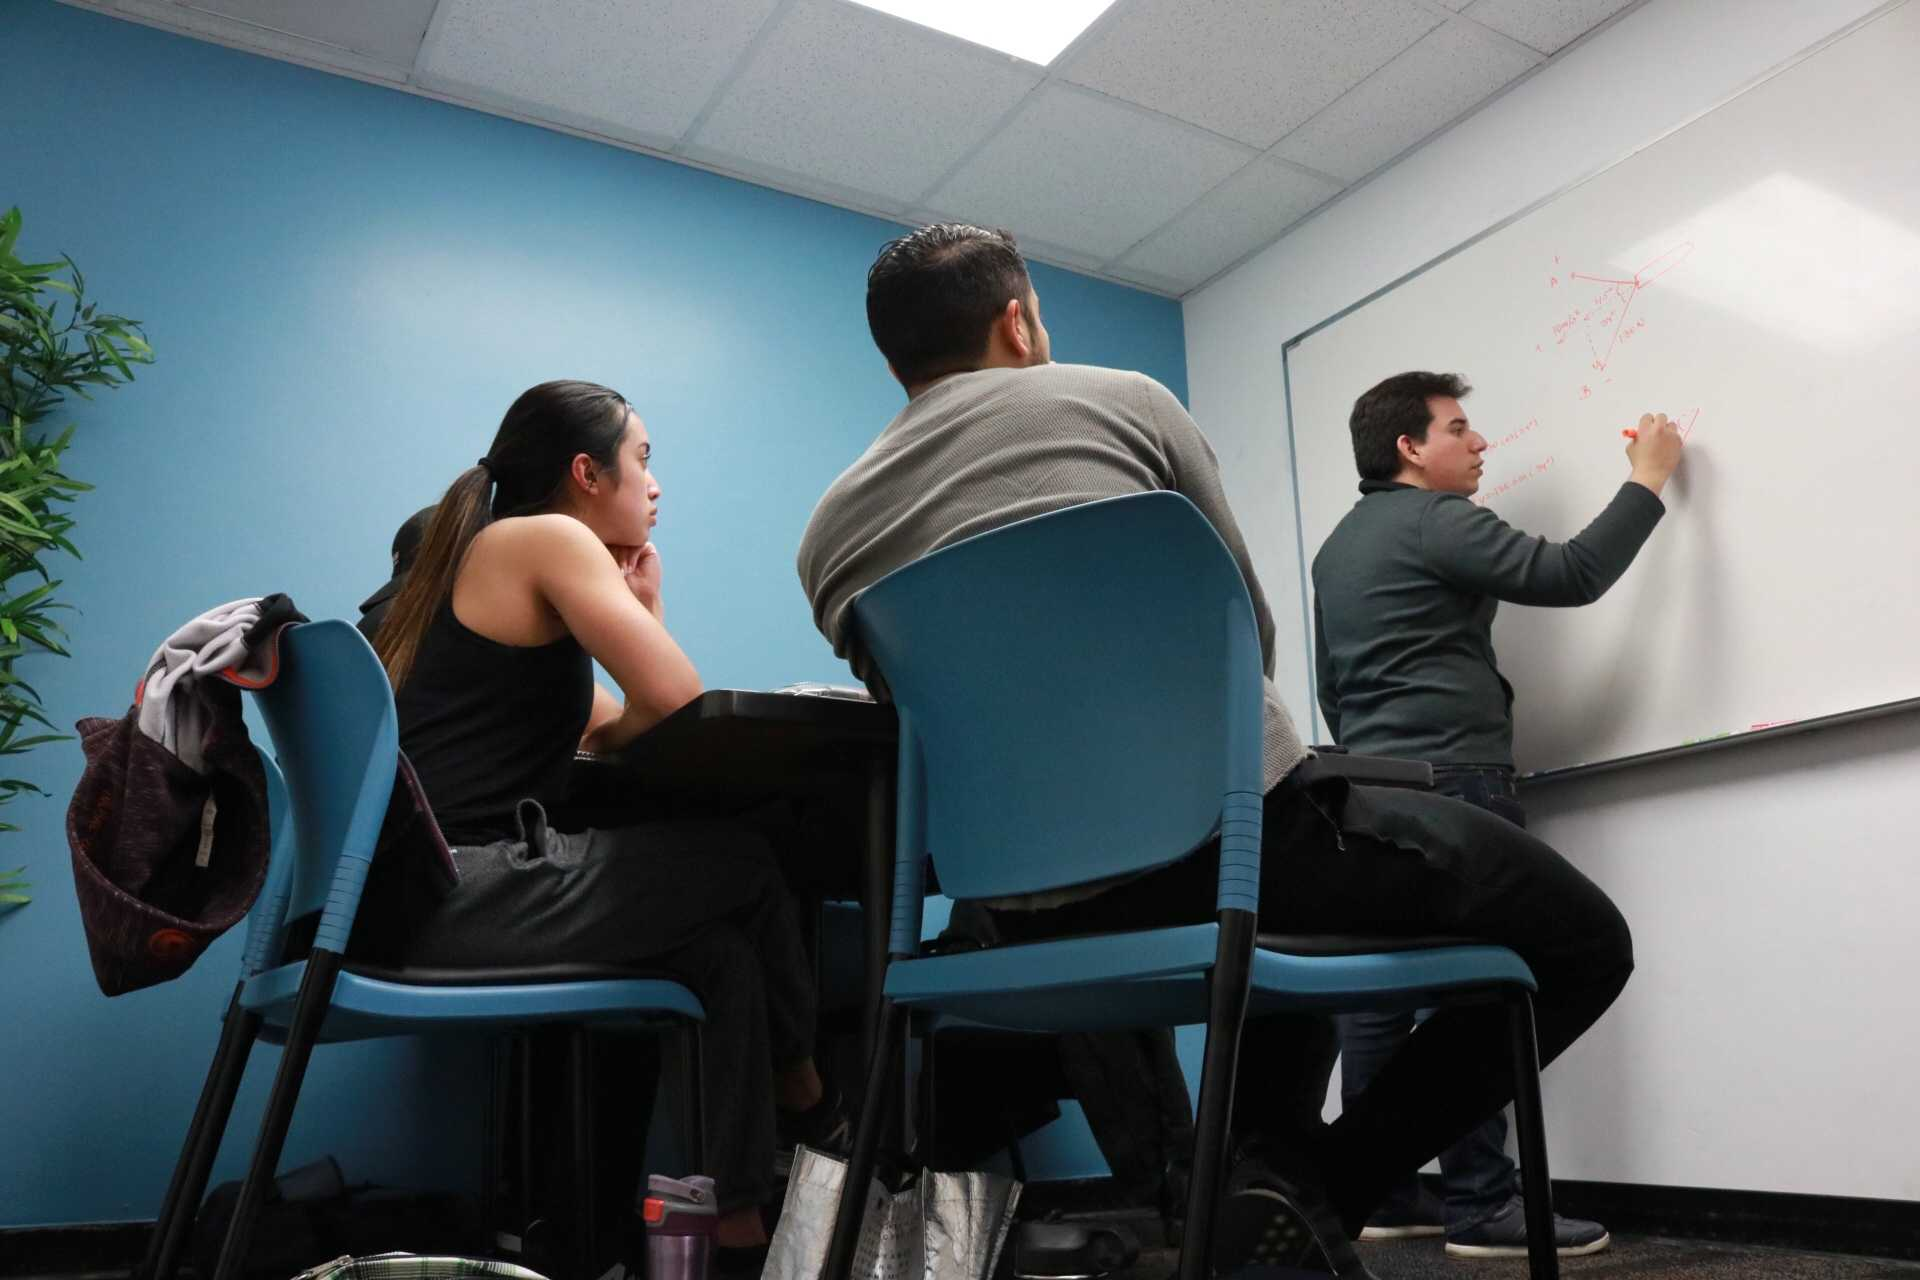 students sit focused while watching a man work on the board